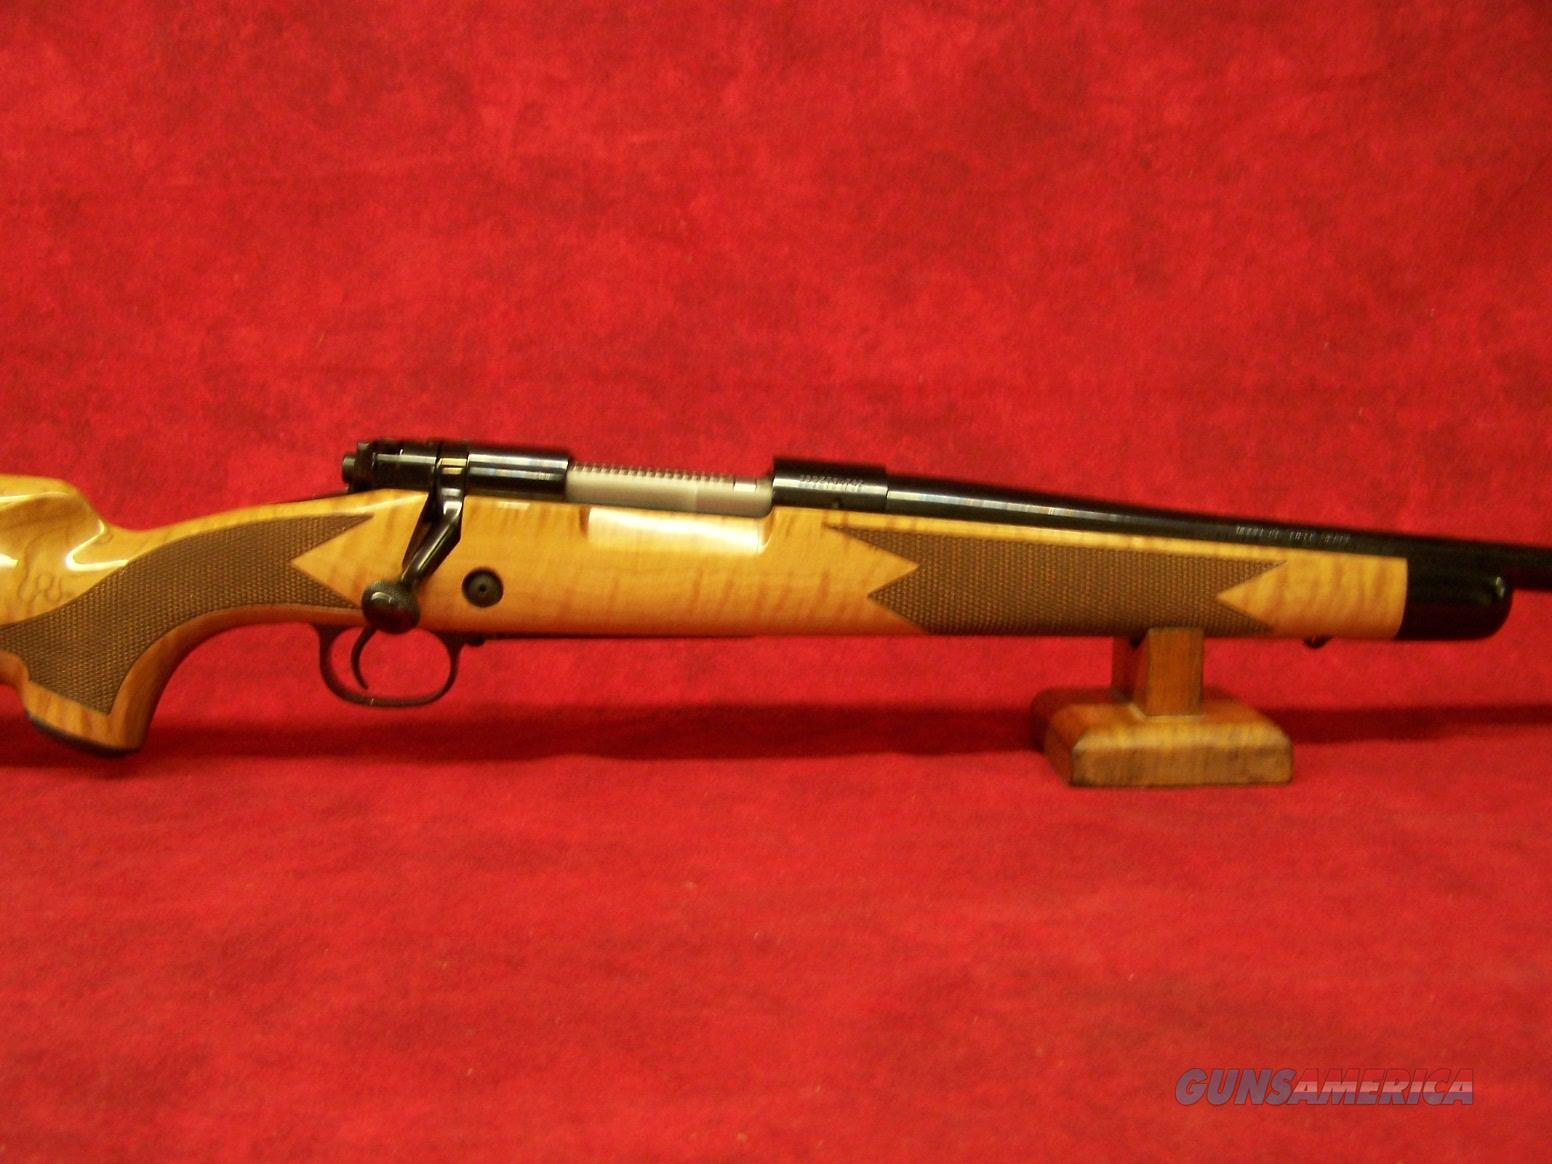 Winchester Model 70 Super Grade Maple .308 Winchester 22 Inch Barrel Polished Blue Finish M.O.A. Trigger AAA Maple Stock Gloss Finish (535218220)  Guns > Rifles > Winchester Rifles - Modern Bolt/Auto/Single > Model 70 > Post-64